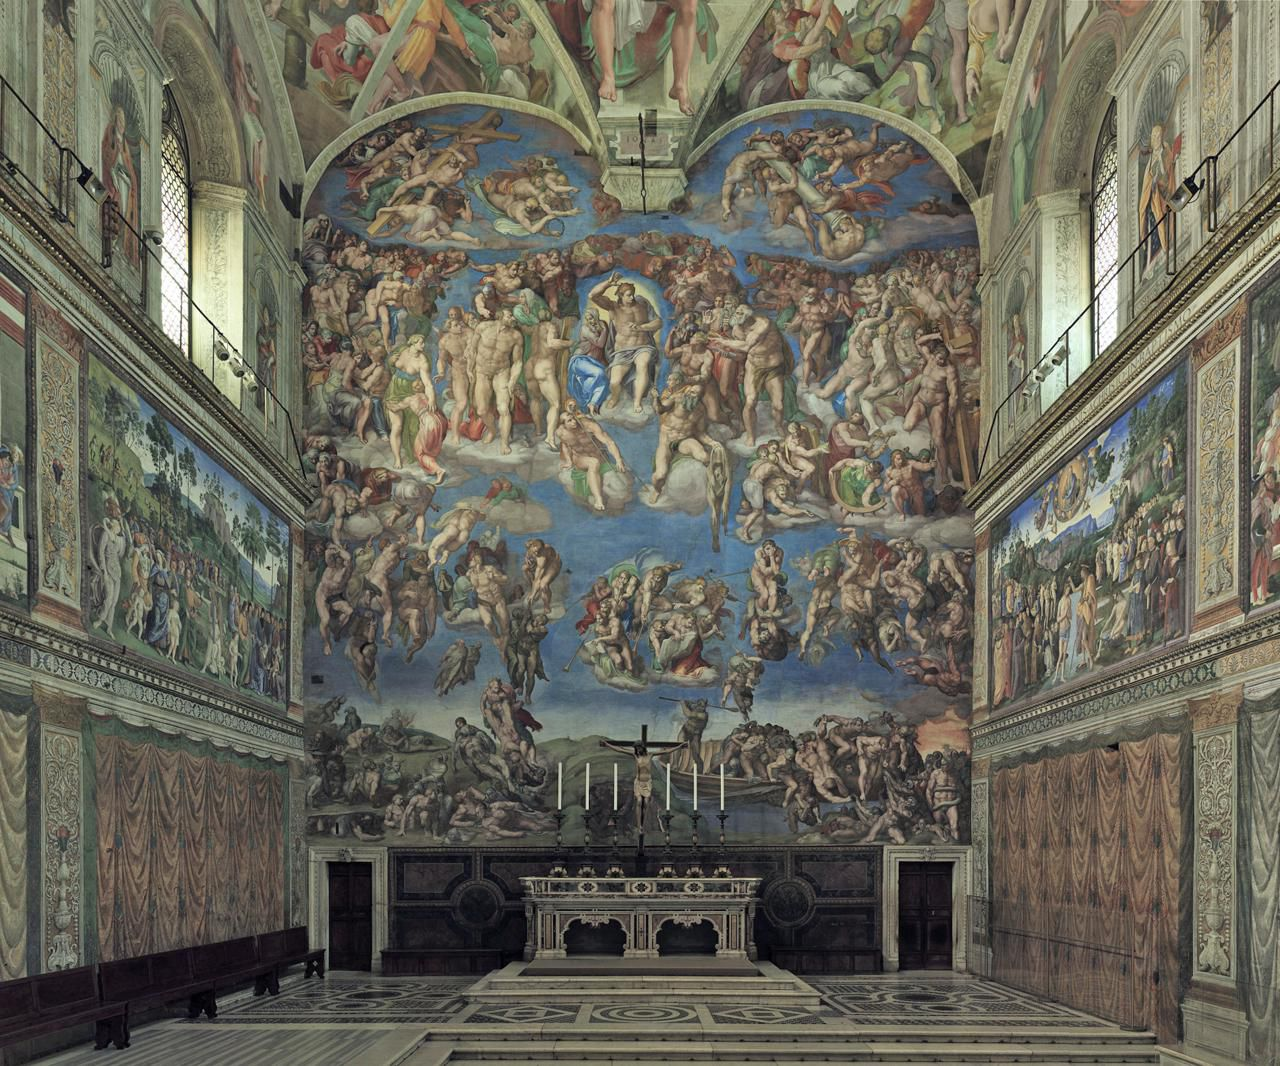 Building History And Architectural Details Of The Sistine